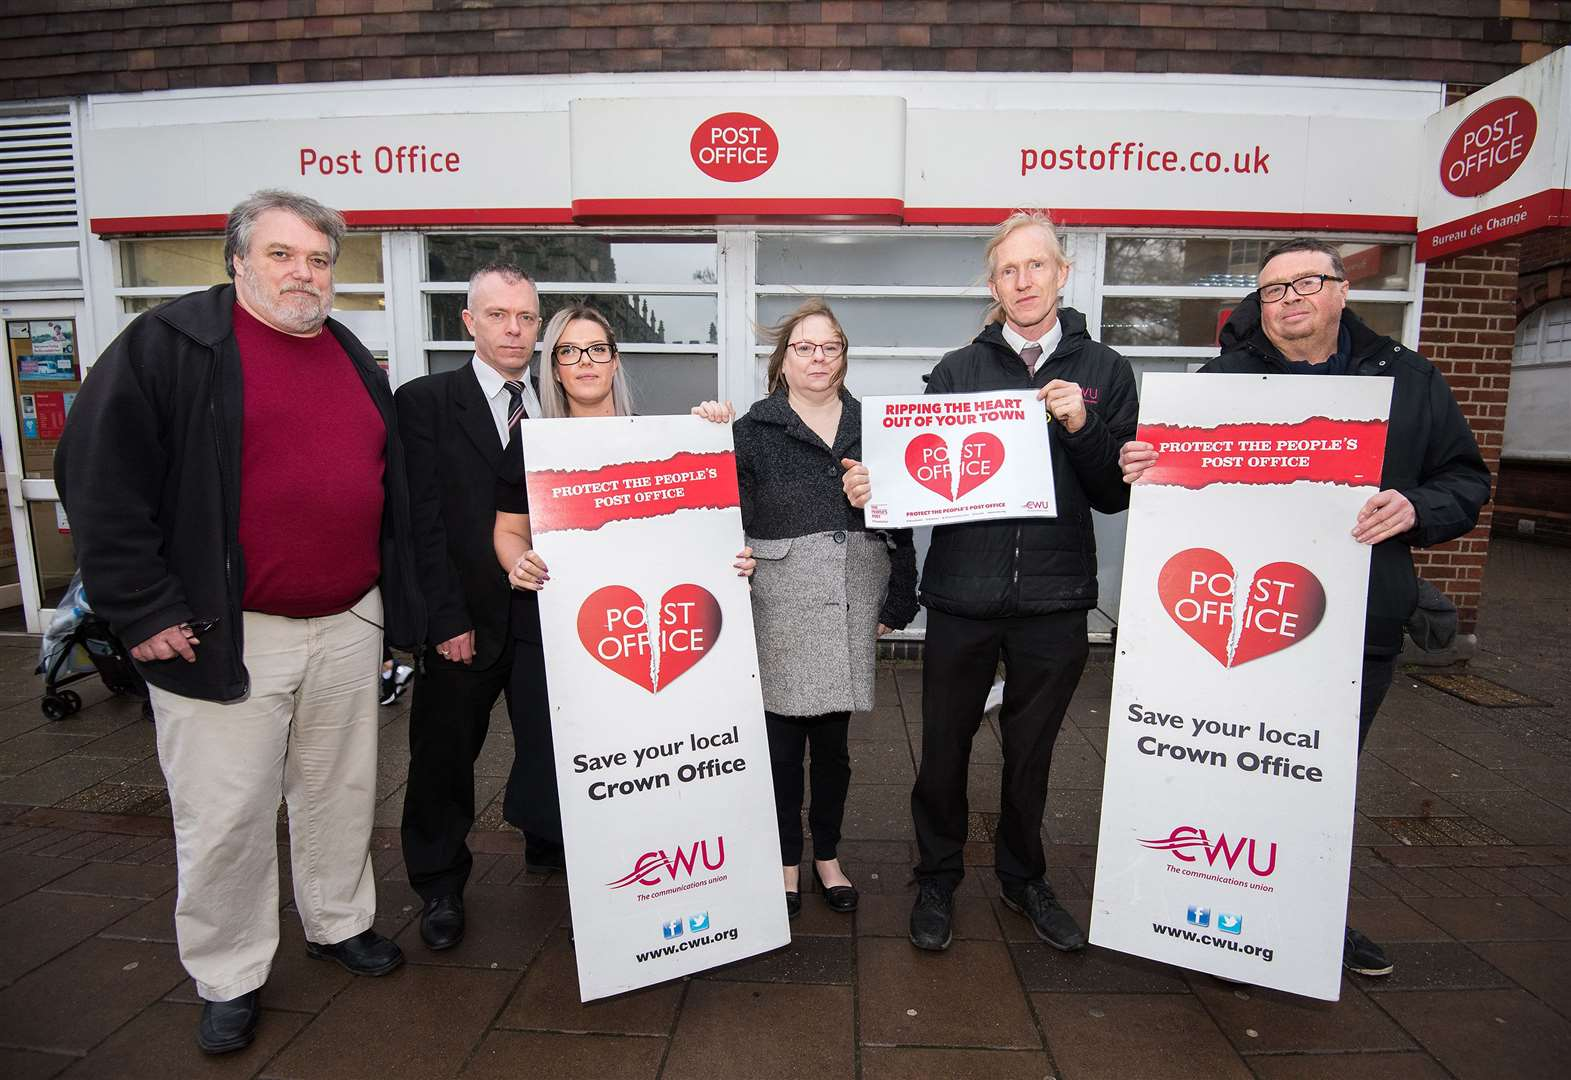 Concerns over changes to Suffolk's last Crown Post Office